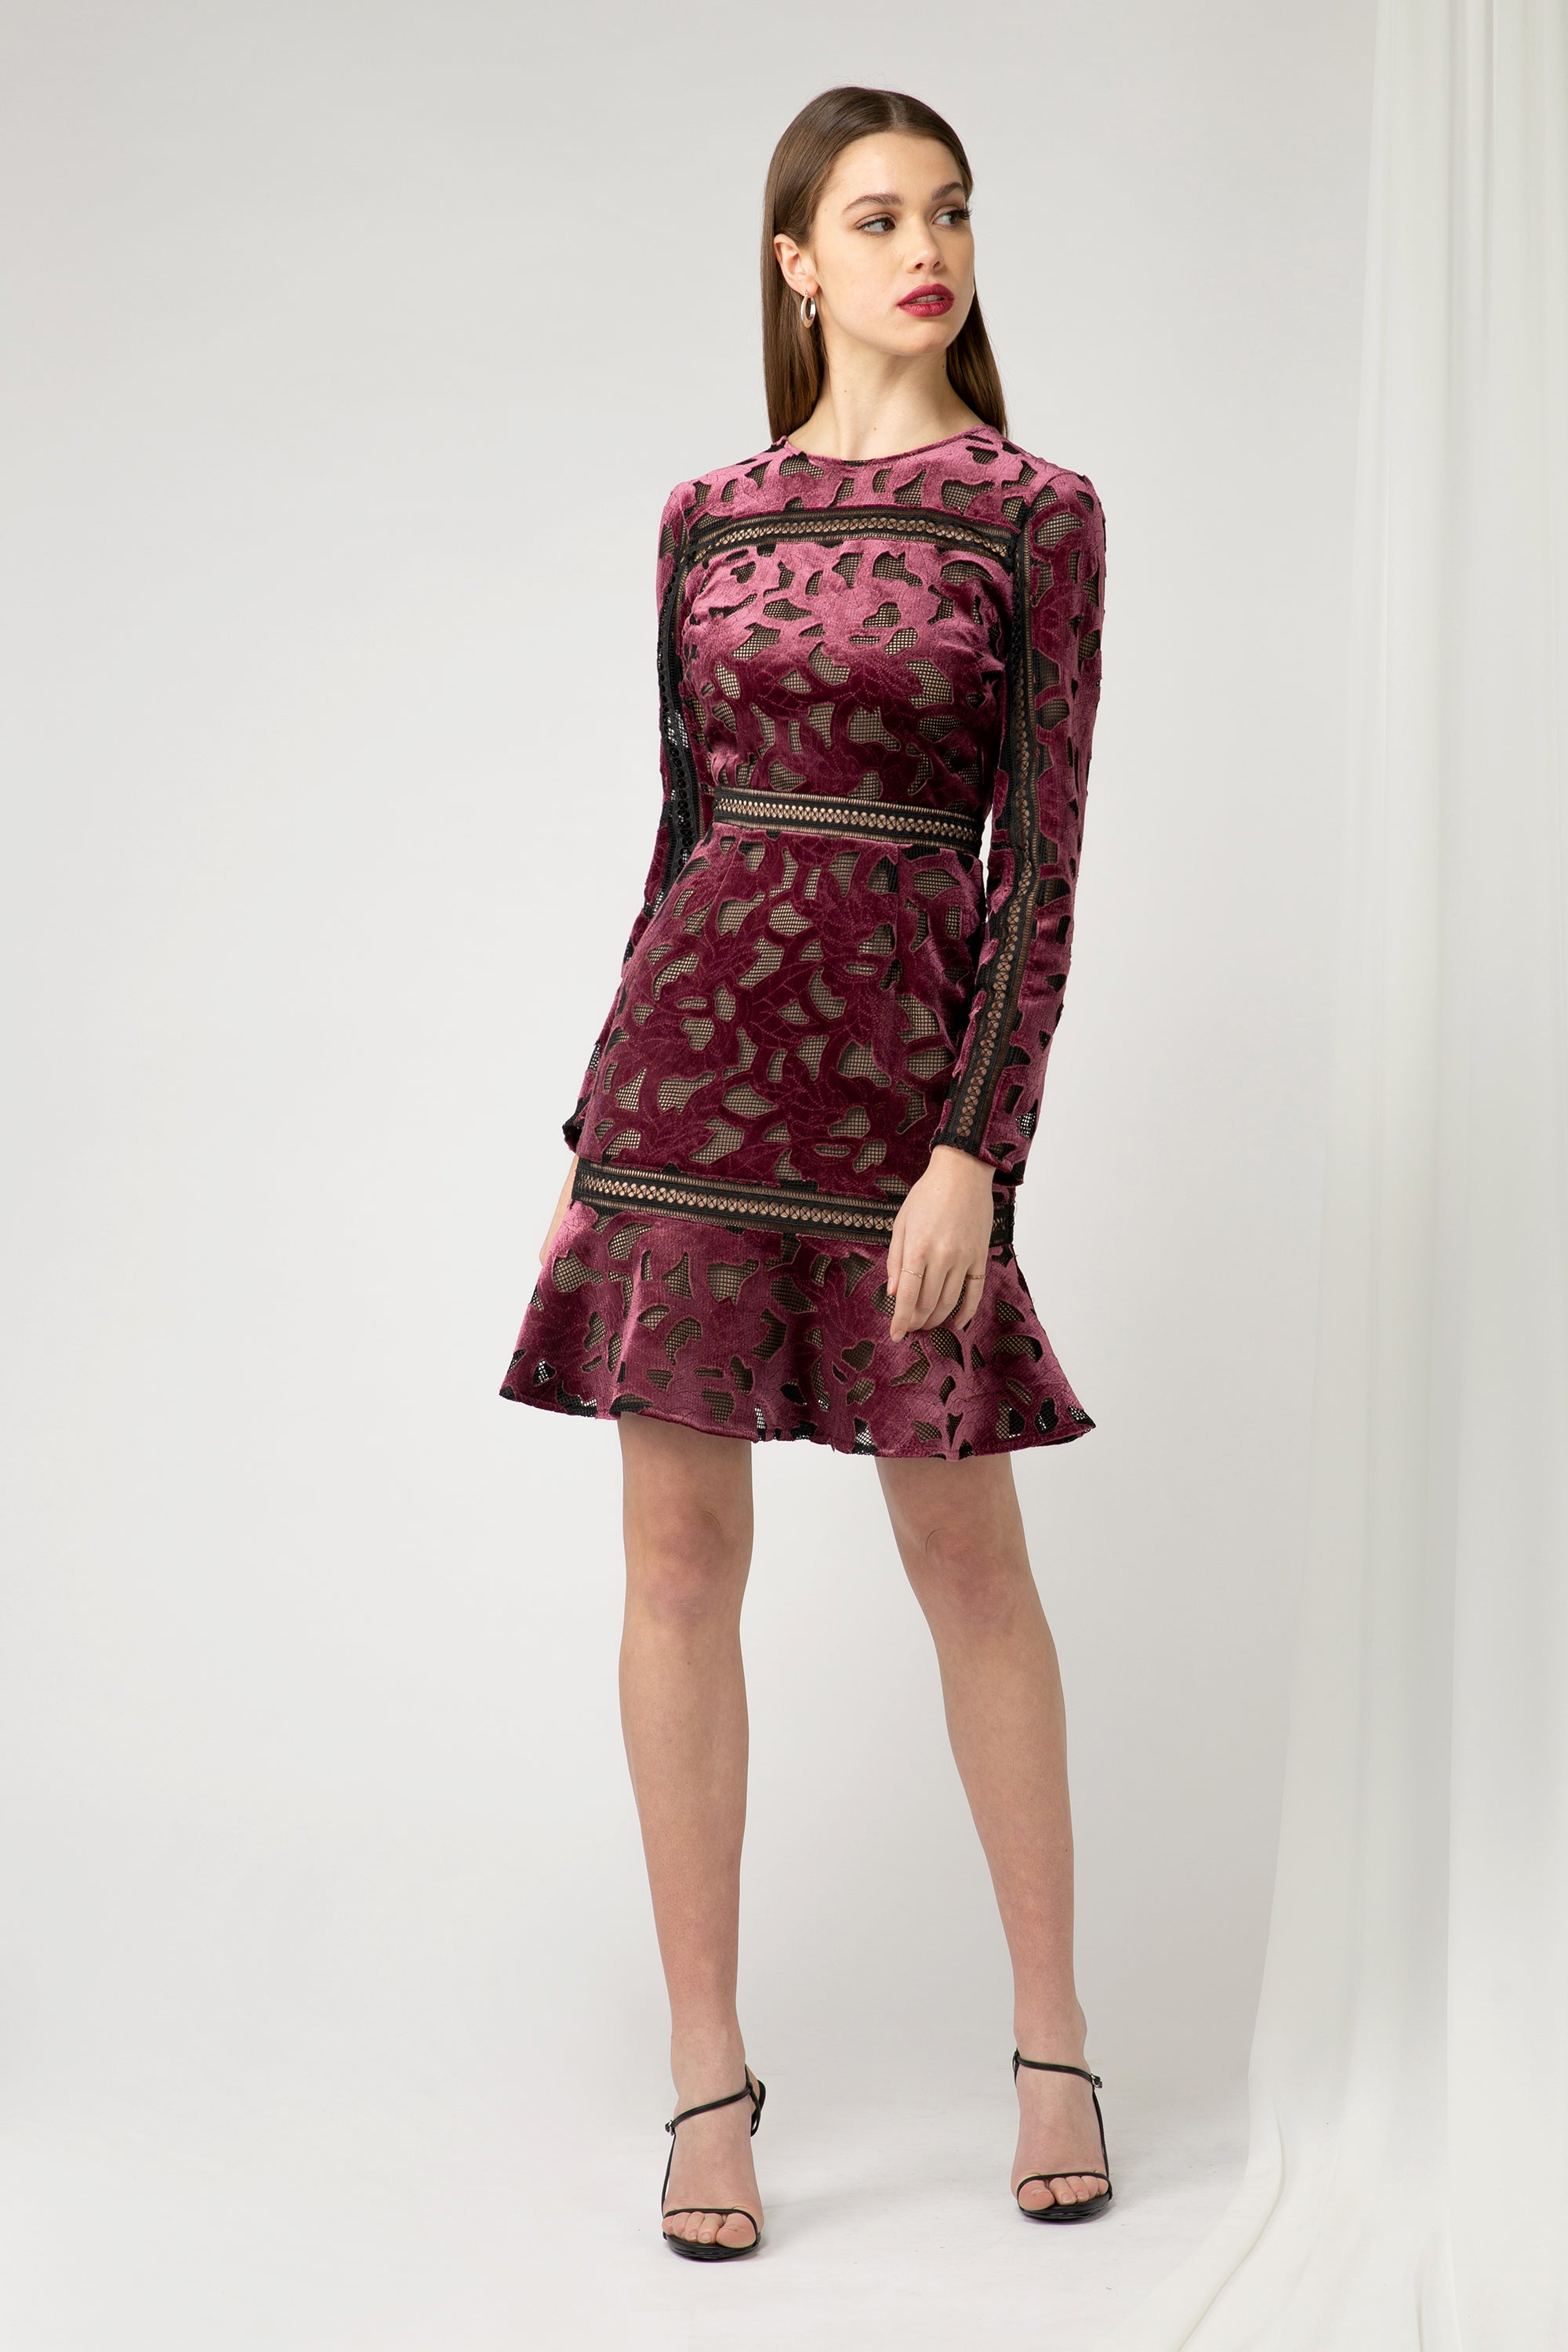 Skyla velvet Lace Sheath Dress